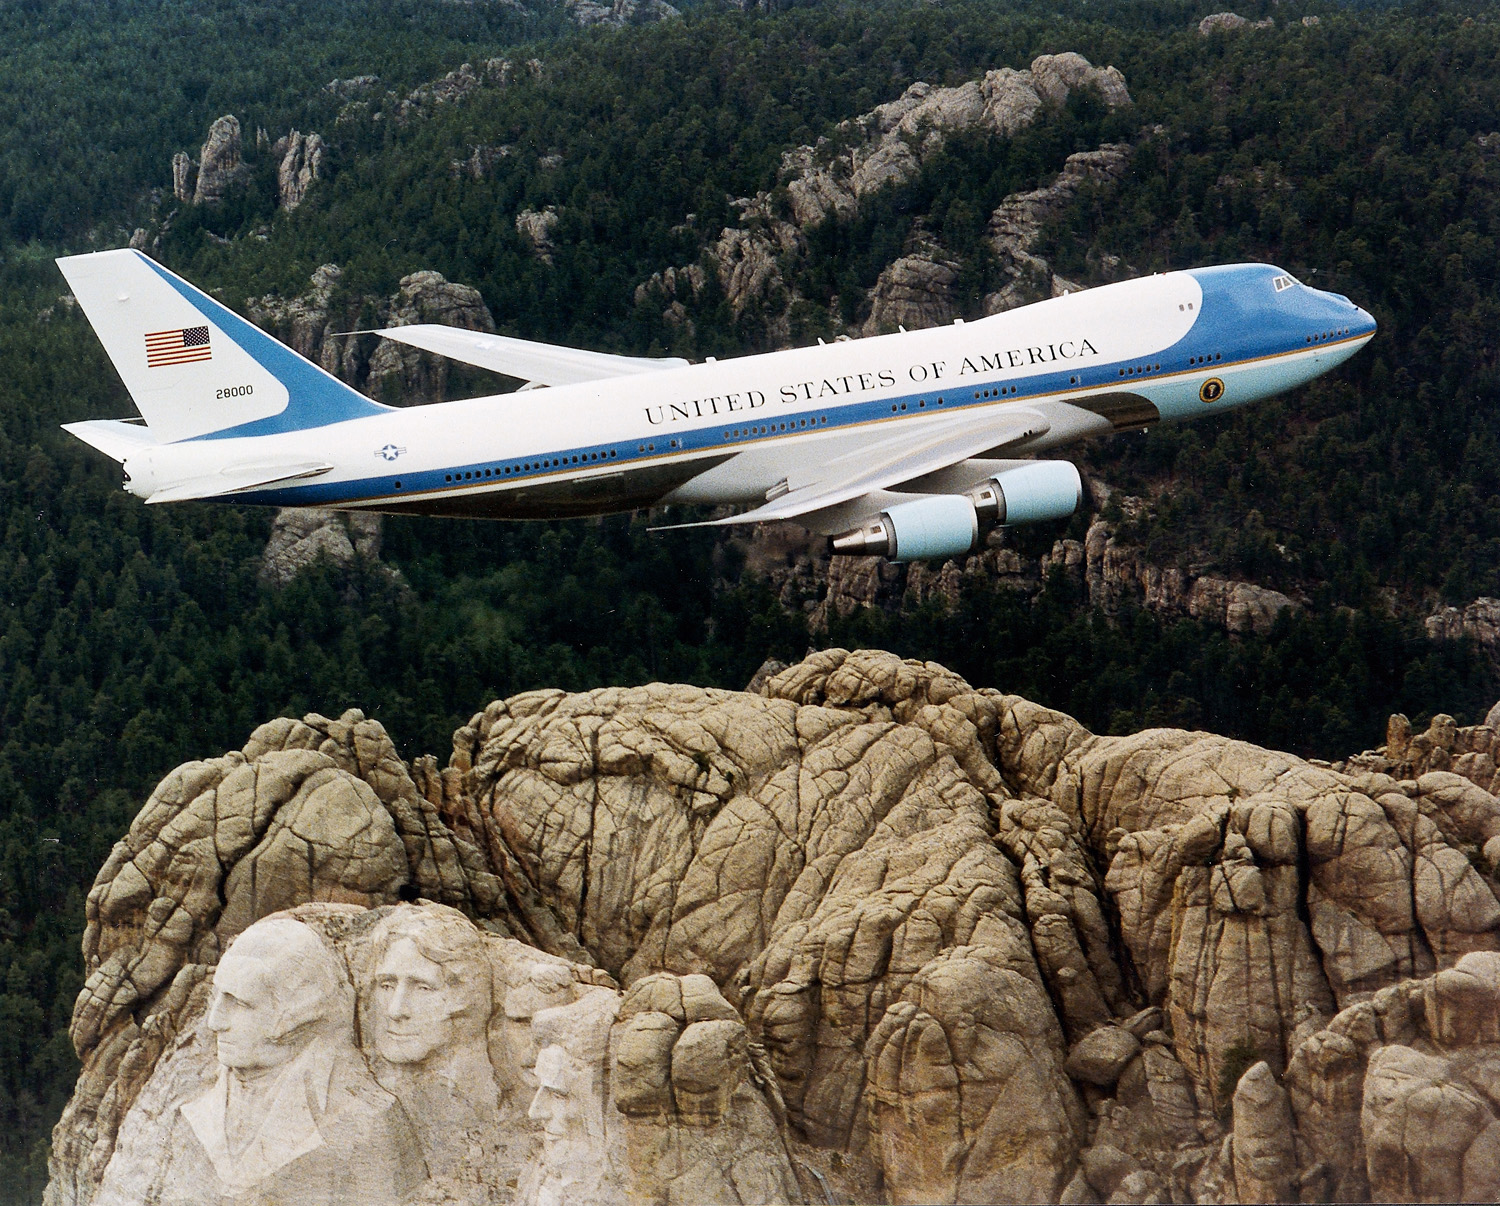 VC-25 Air Force One - VC-25 Air Force One flying over Mt. Rushmore.